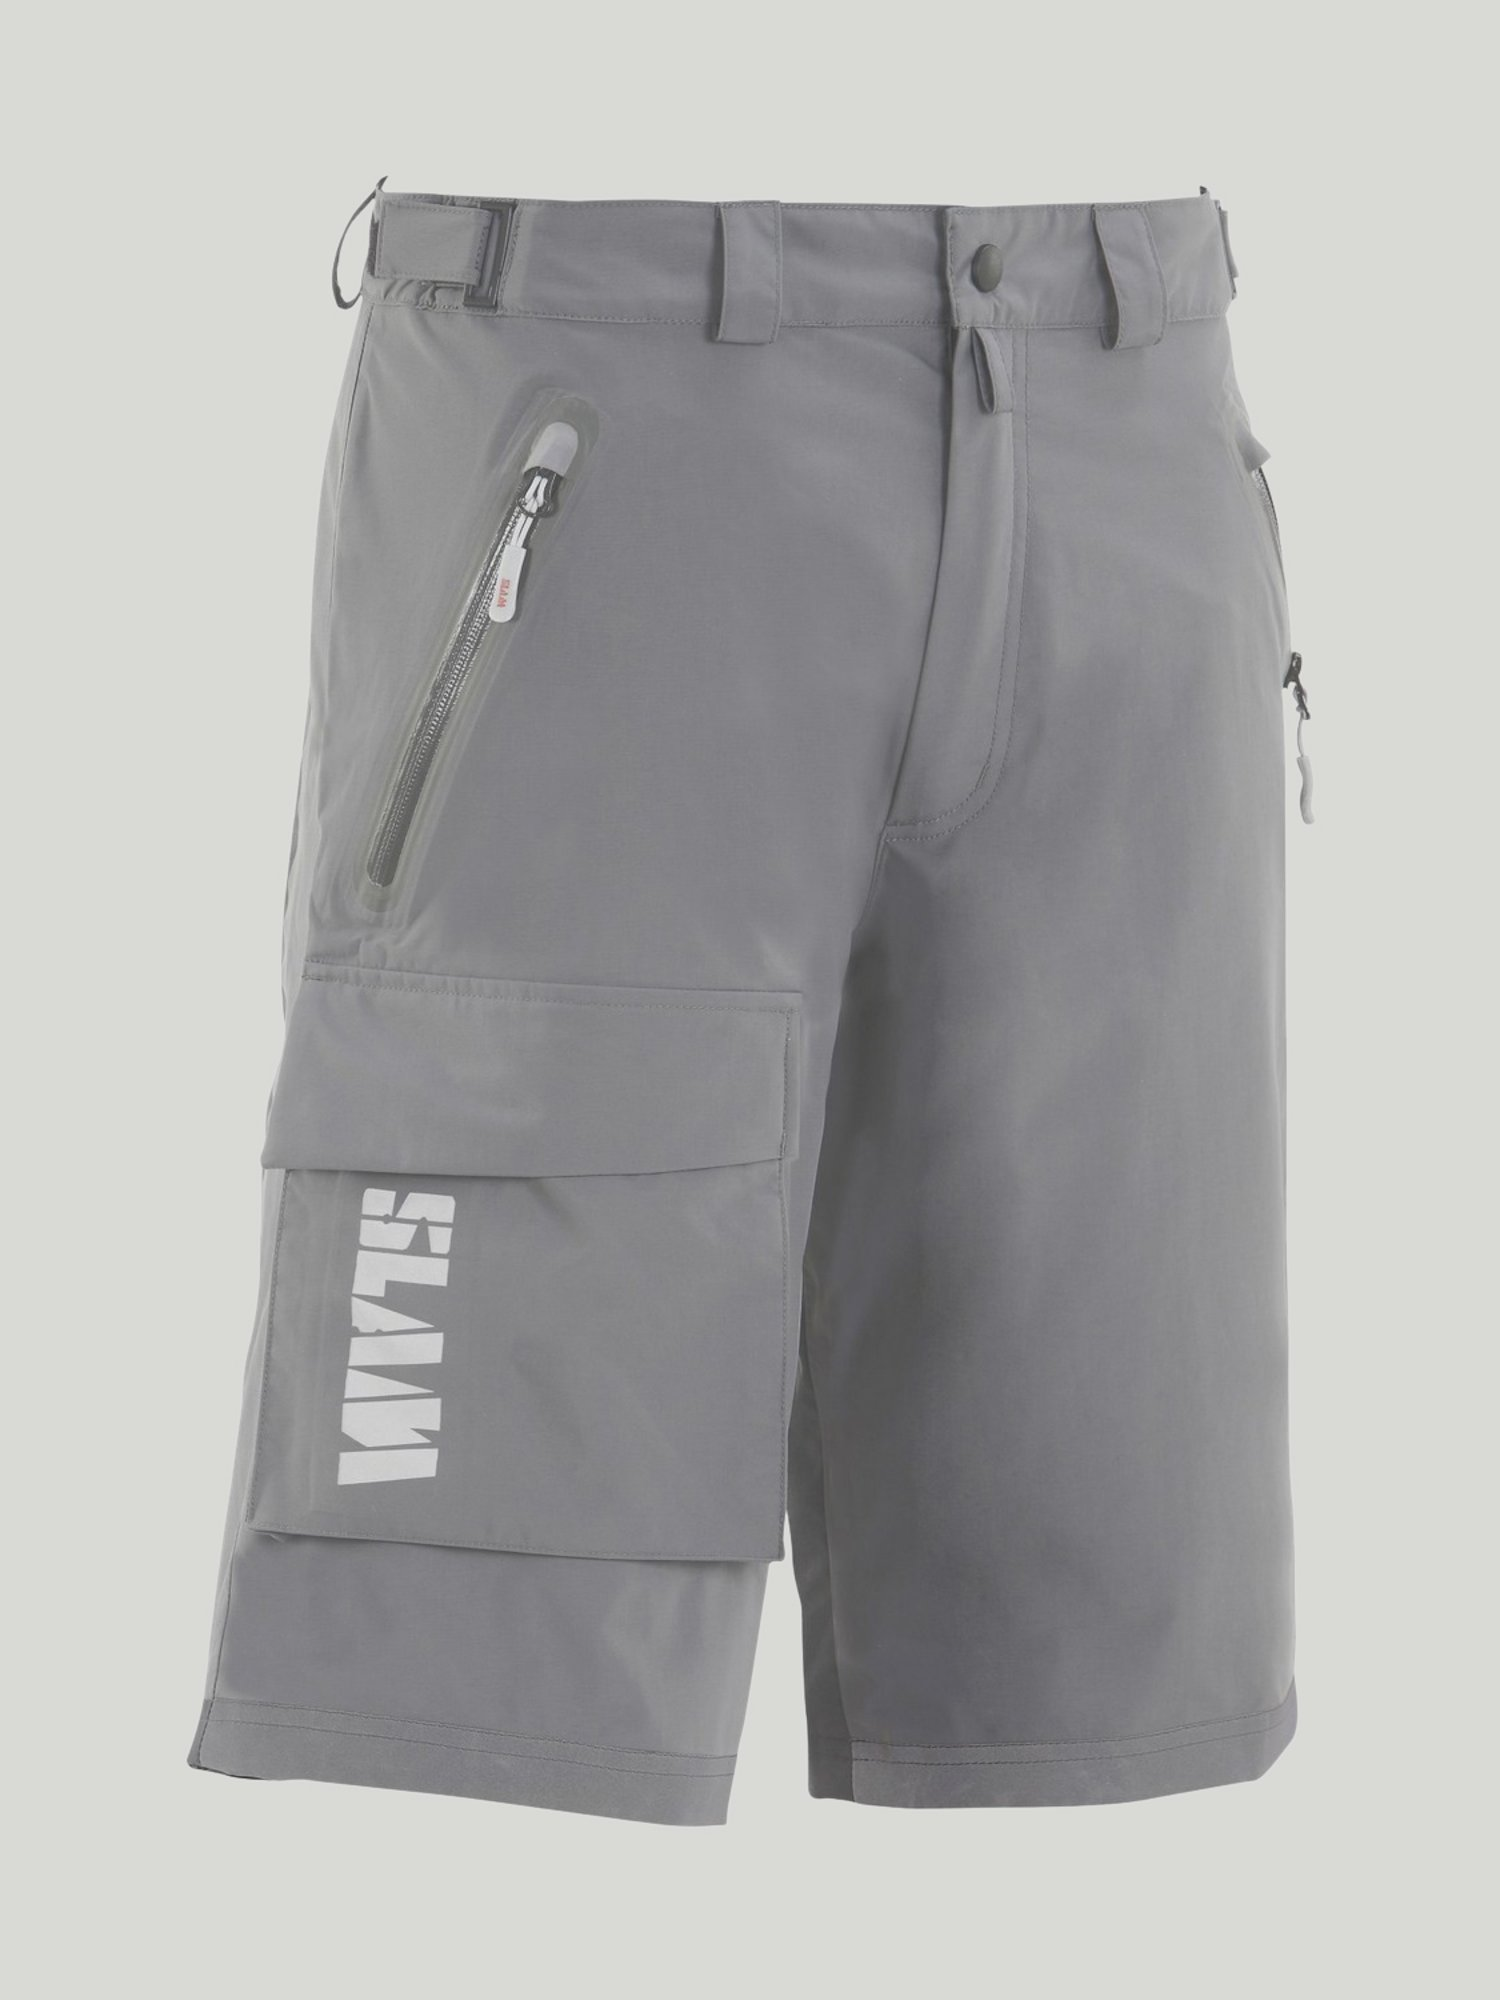 Force 2 shorts - Grey